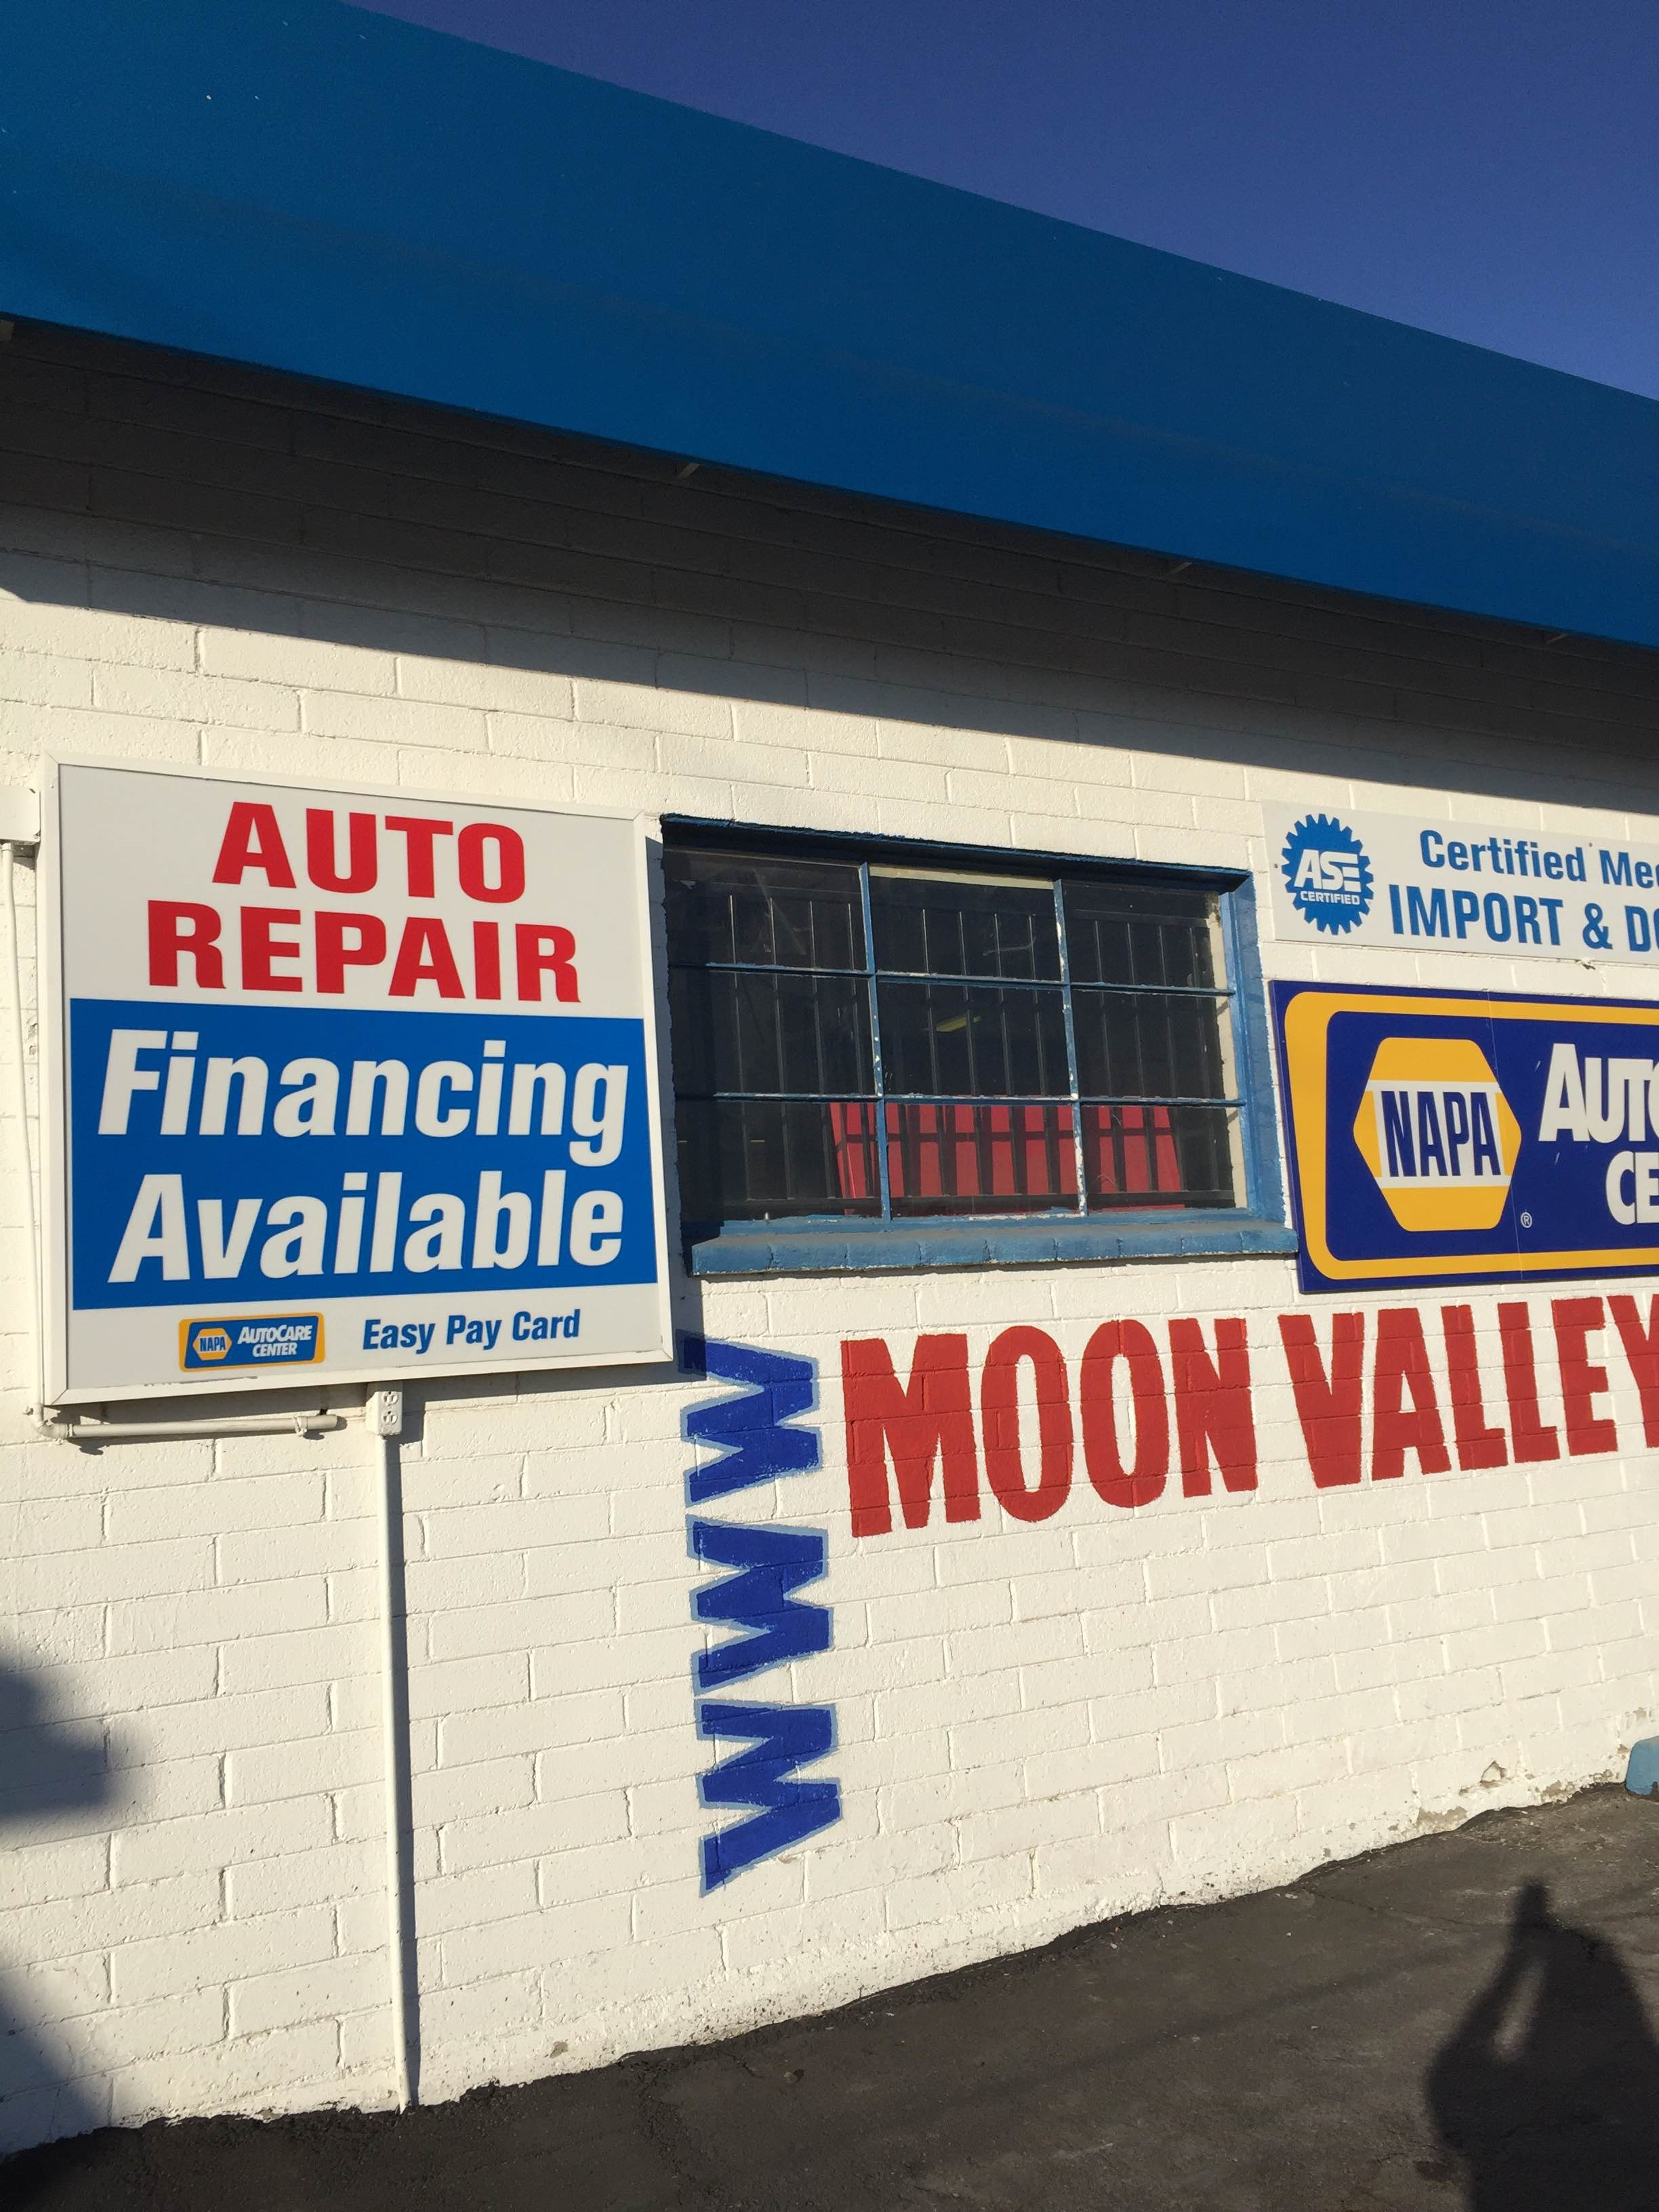 moon valley motor care 14405 n 7th st phoenix az 85022 On moon valley motor care